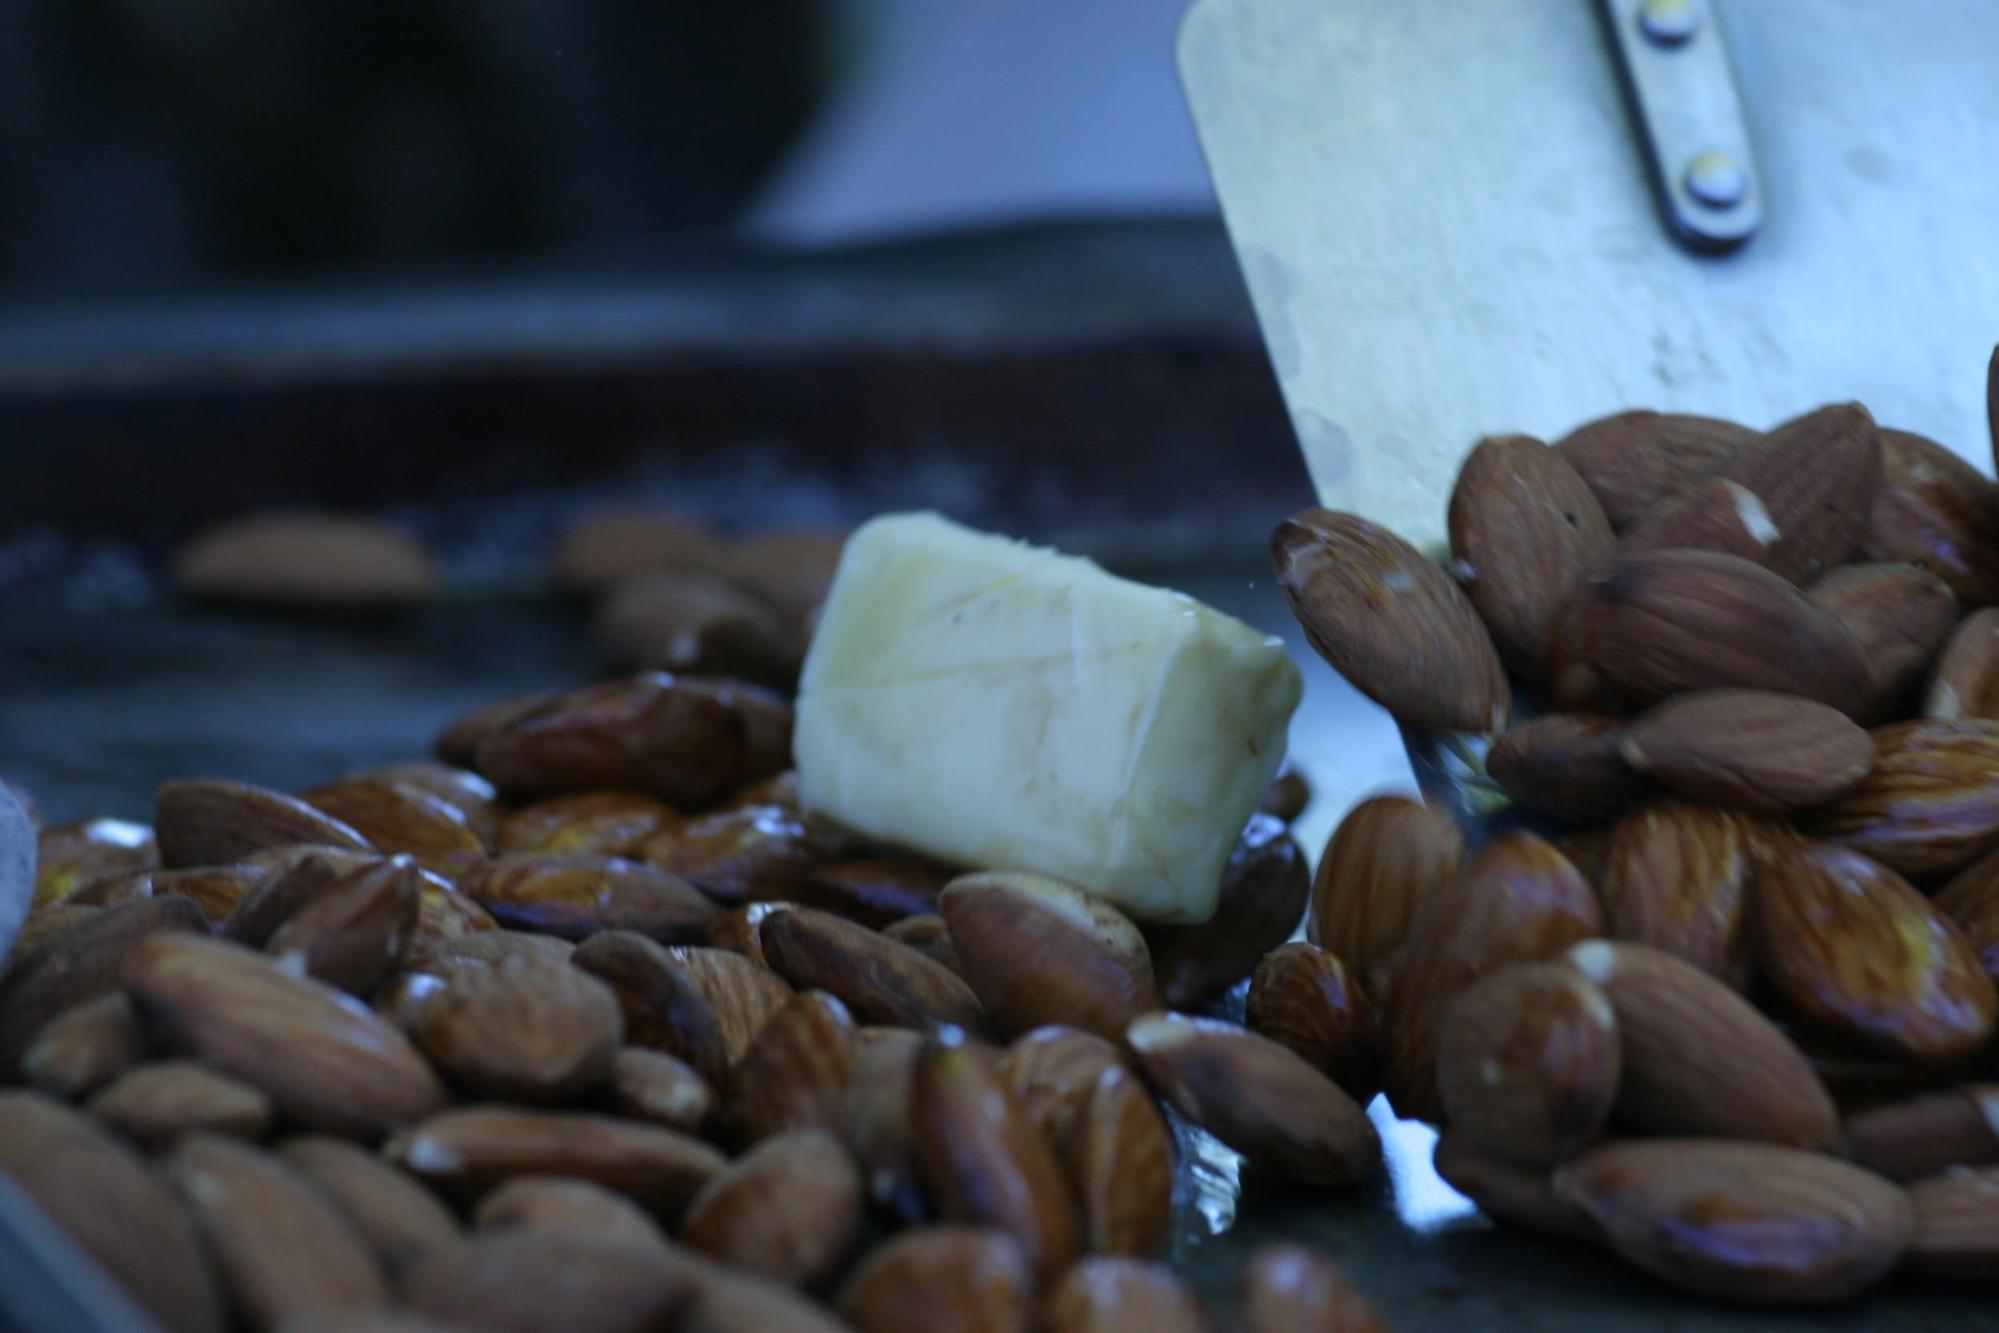 Buttered Almonds